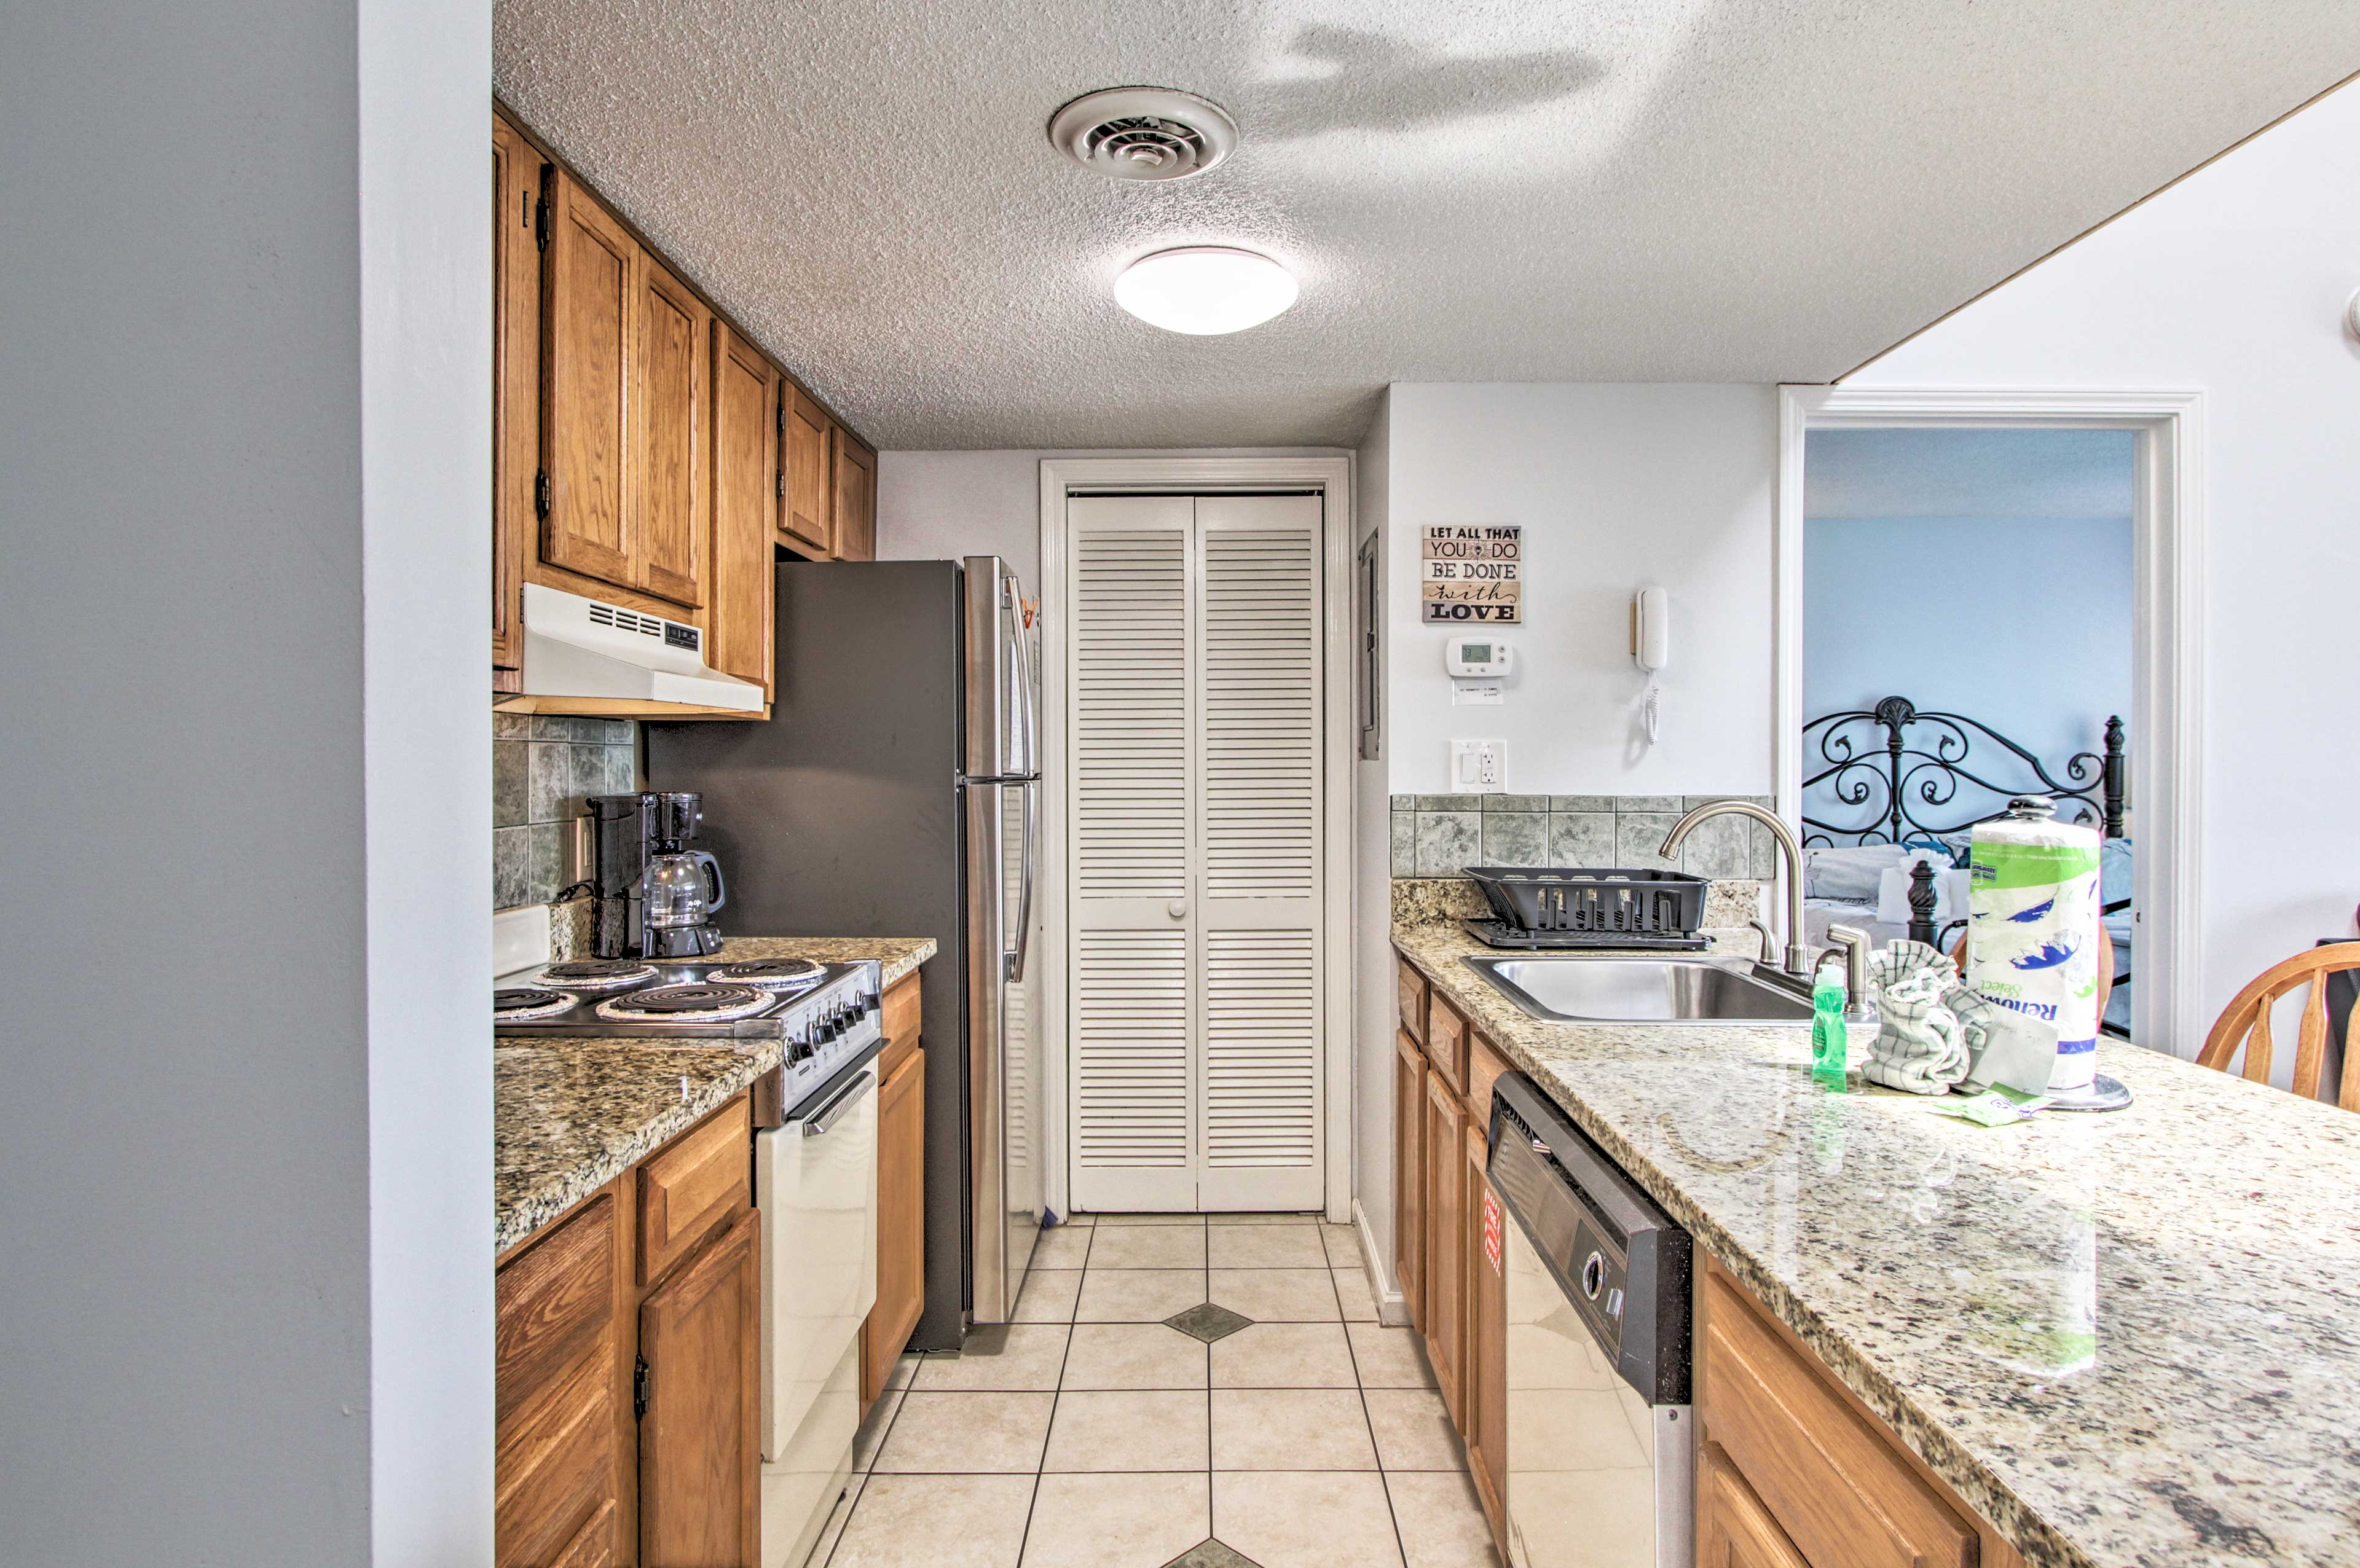 You'll appreciate the kitchen's granite counters and natural wood elements.